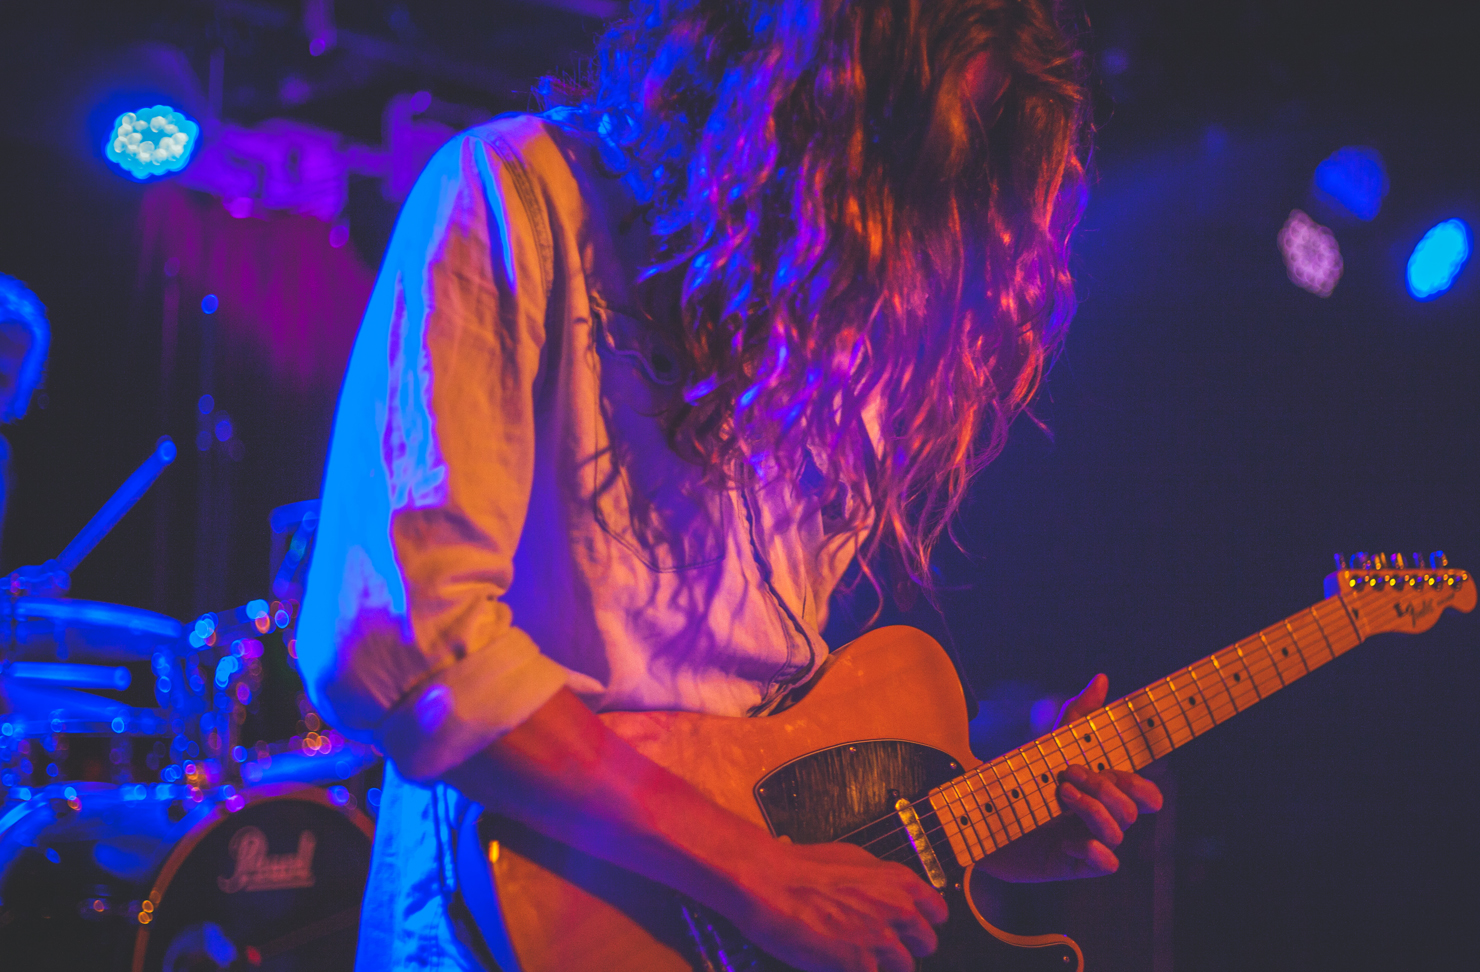 A musician on stage and playing guitar. Their face is covered by long, unruly hair.